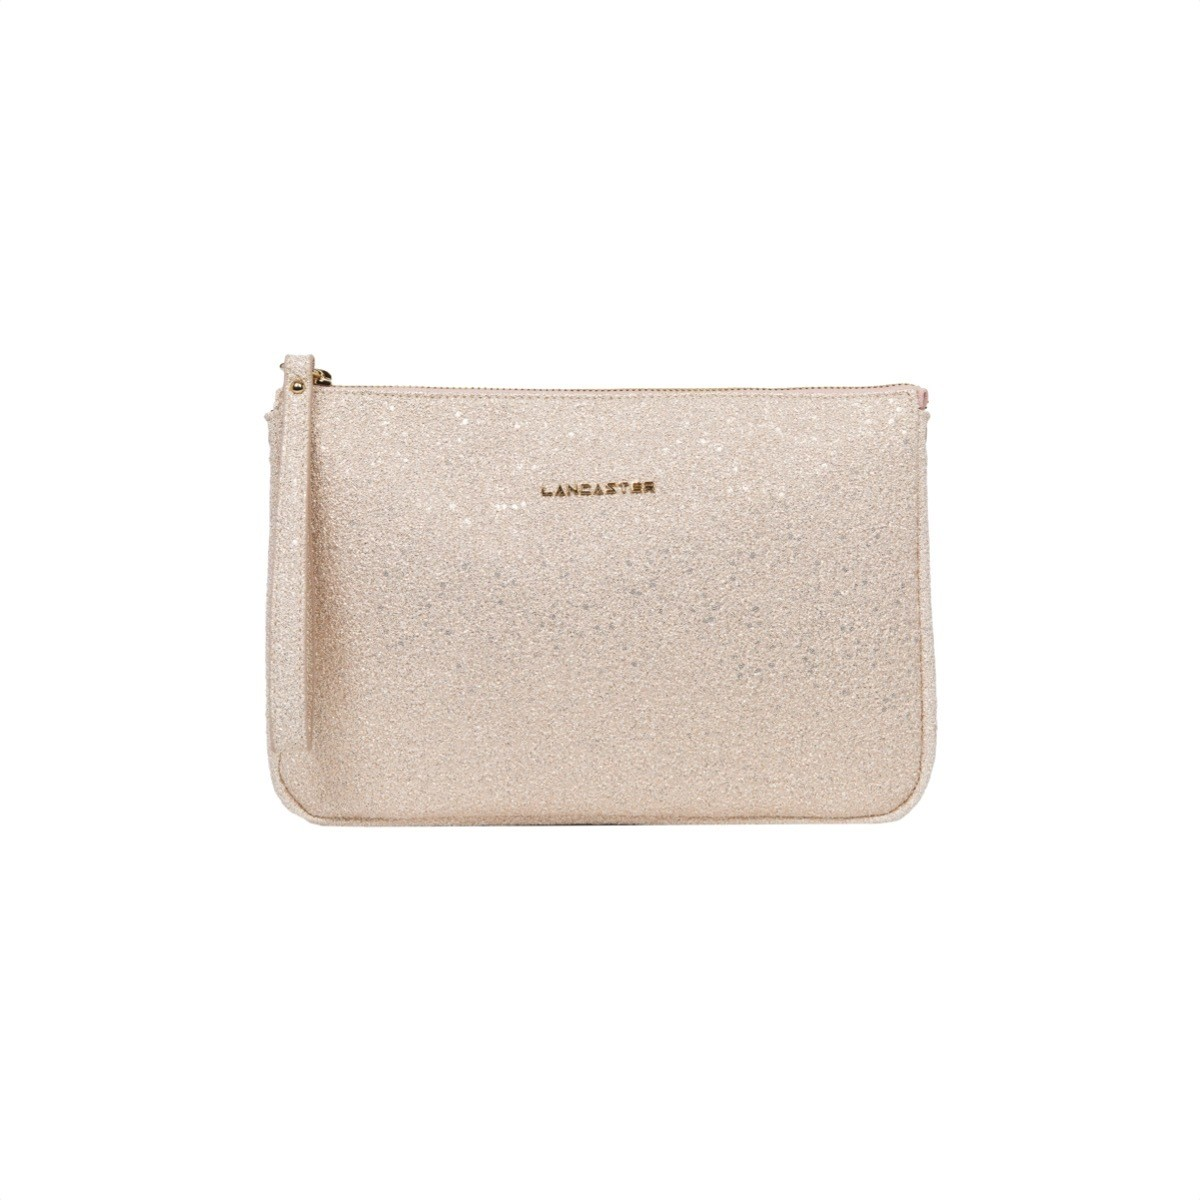 LANCASTER - Large clutch - Or Rose